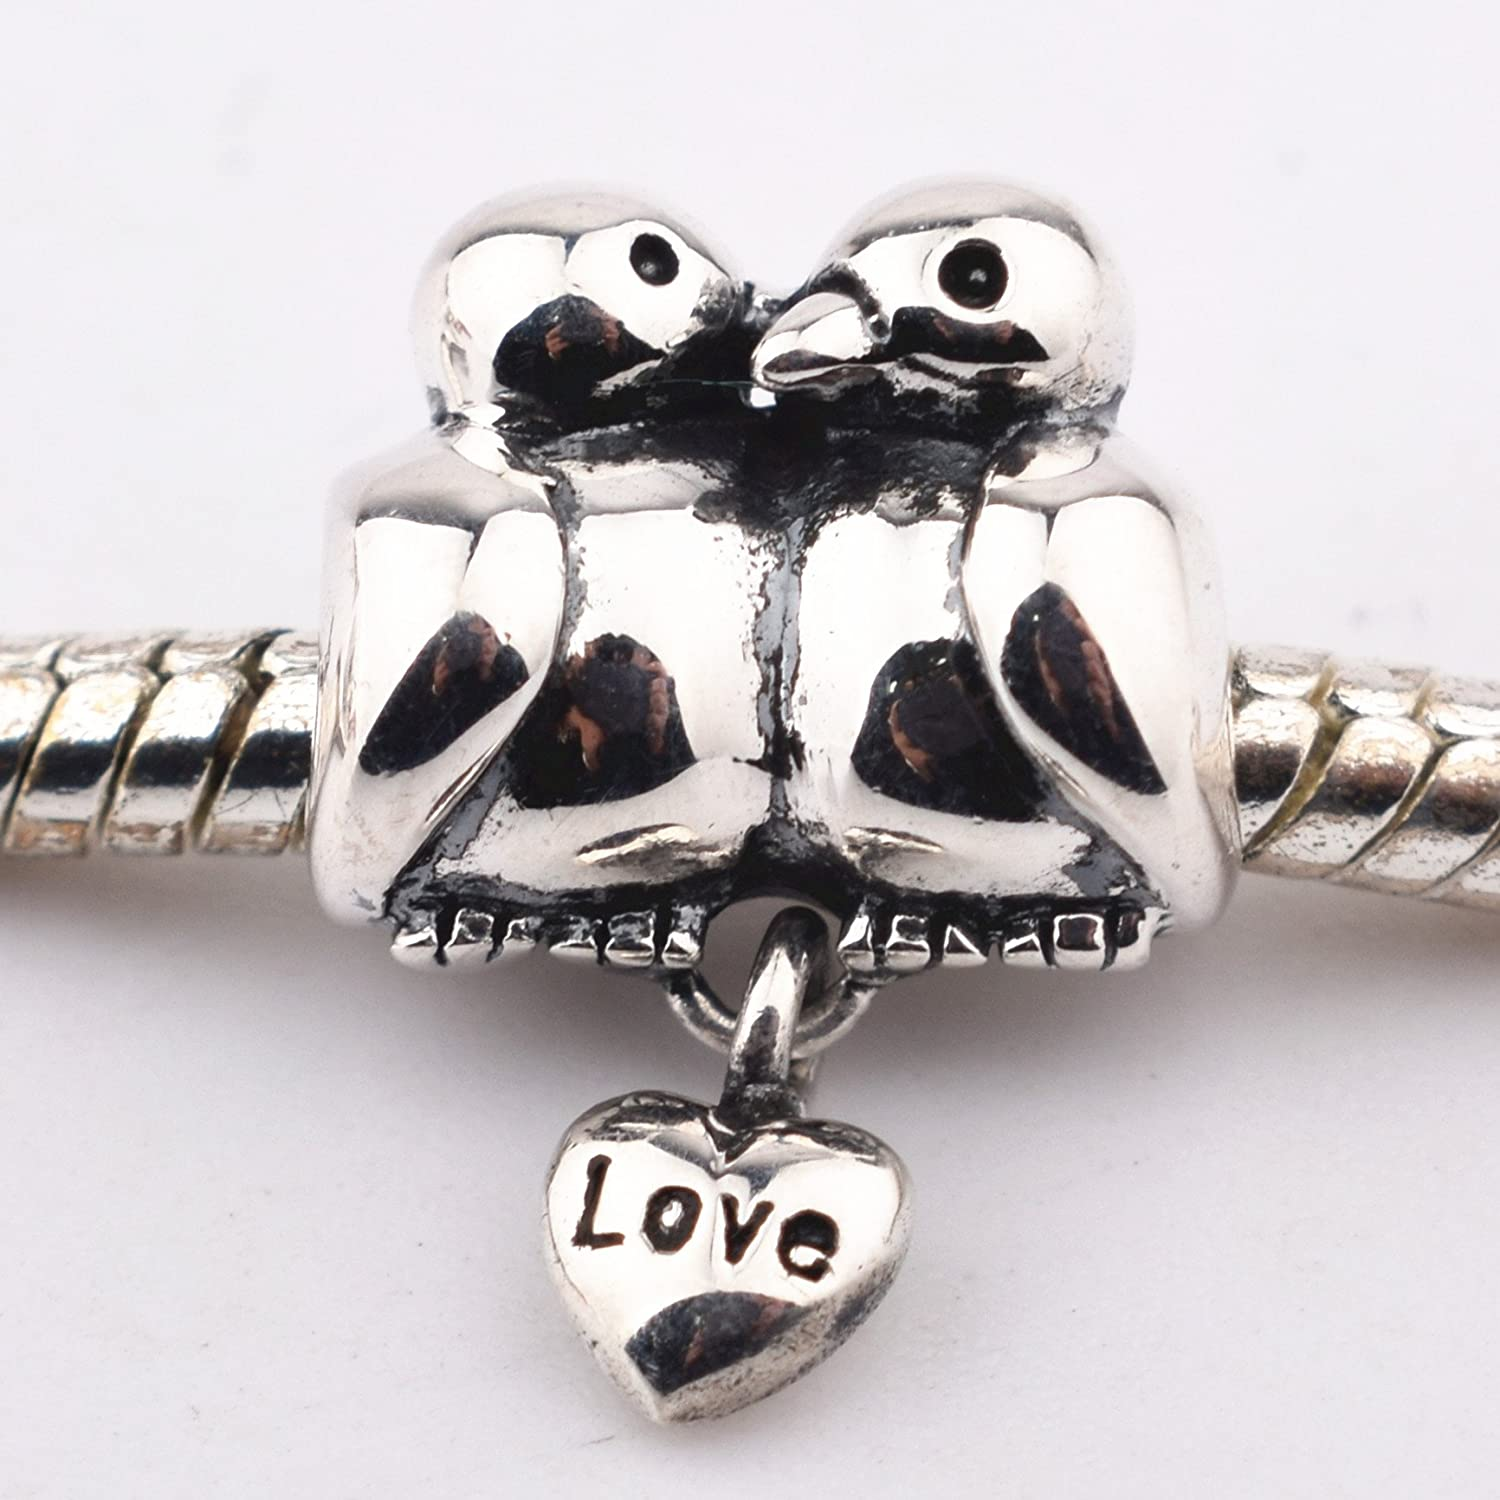 Qiaose I Love You Heart Charm 925 Sterling Silver Beads Valentine Charm Gifts for Women Bracelet